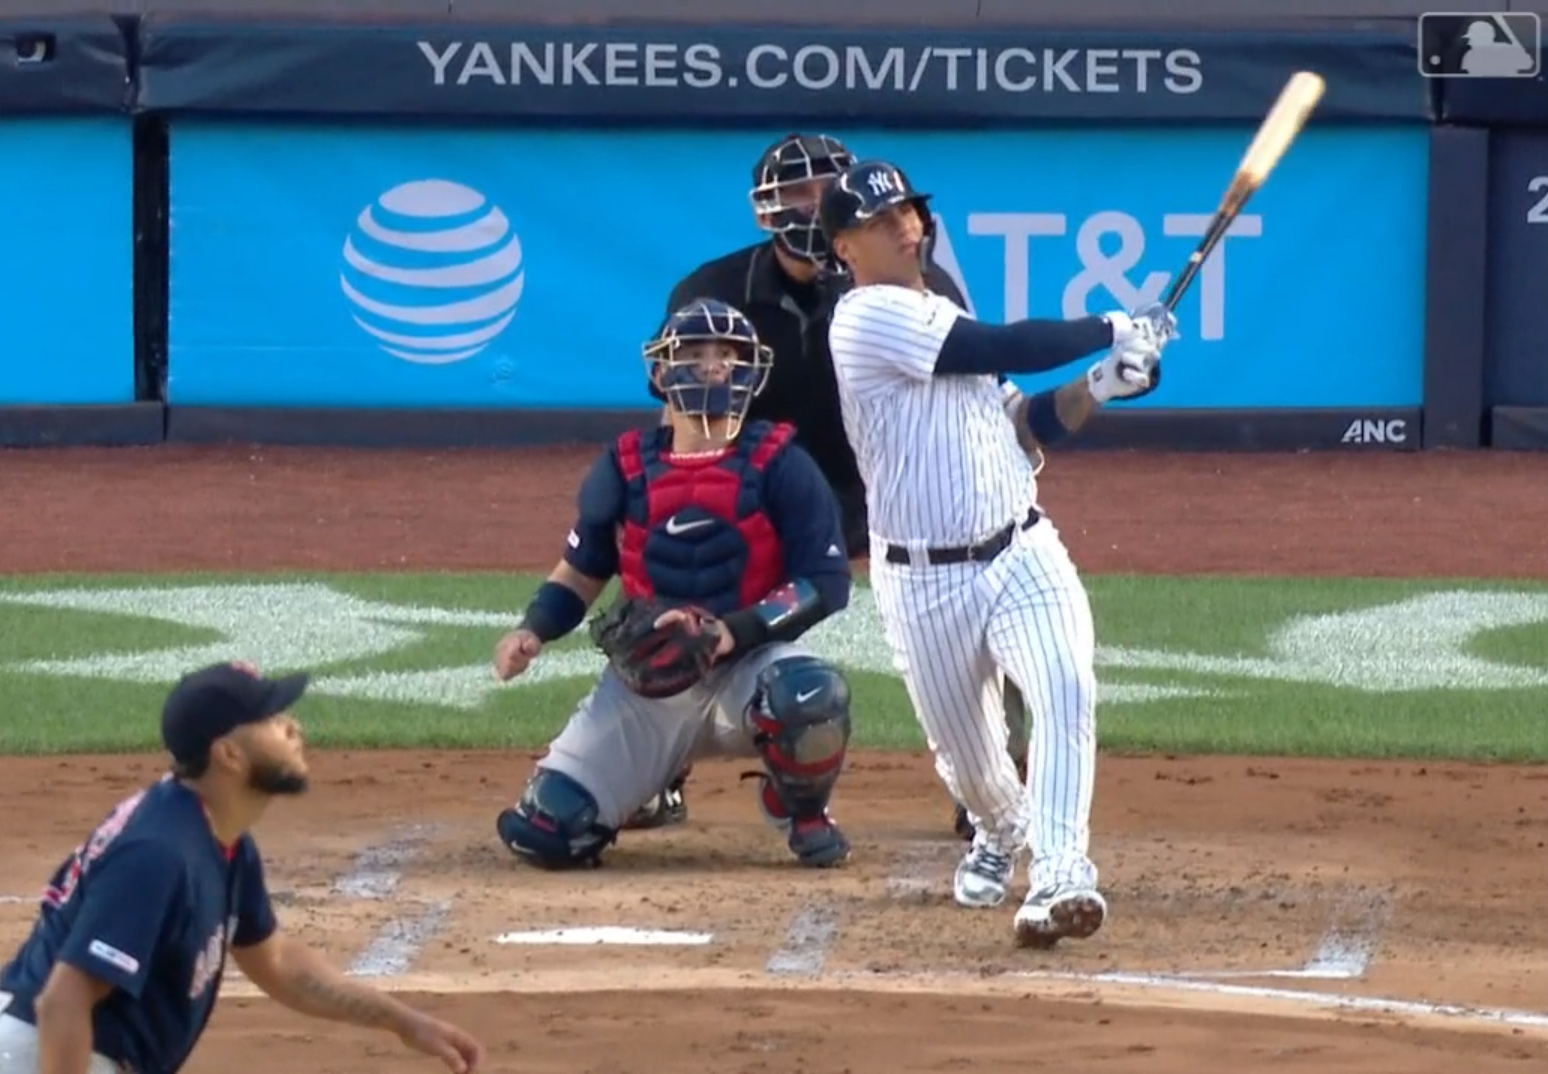 Gleyber Torres is the Yankees' Last Man Standing